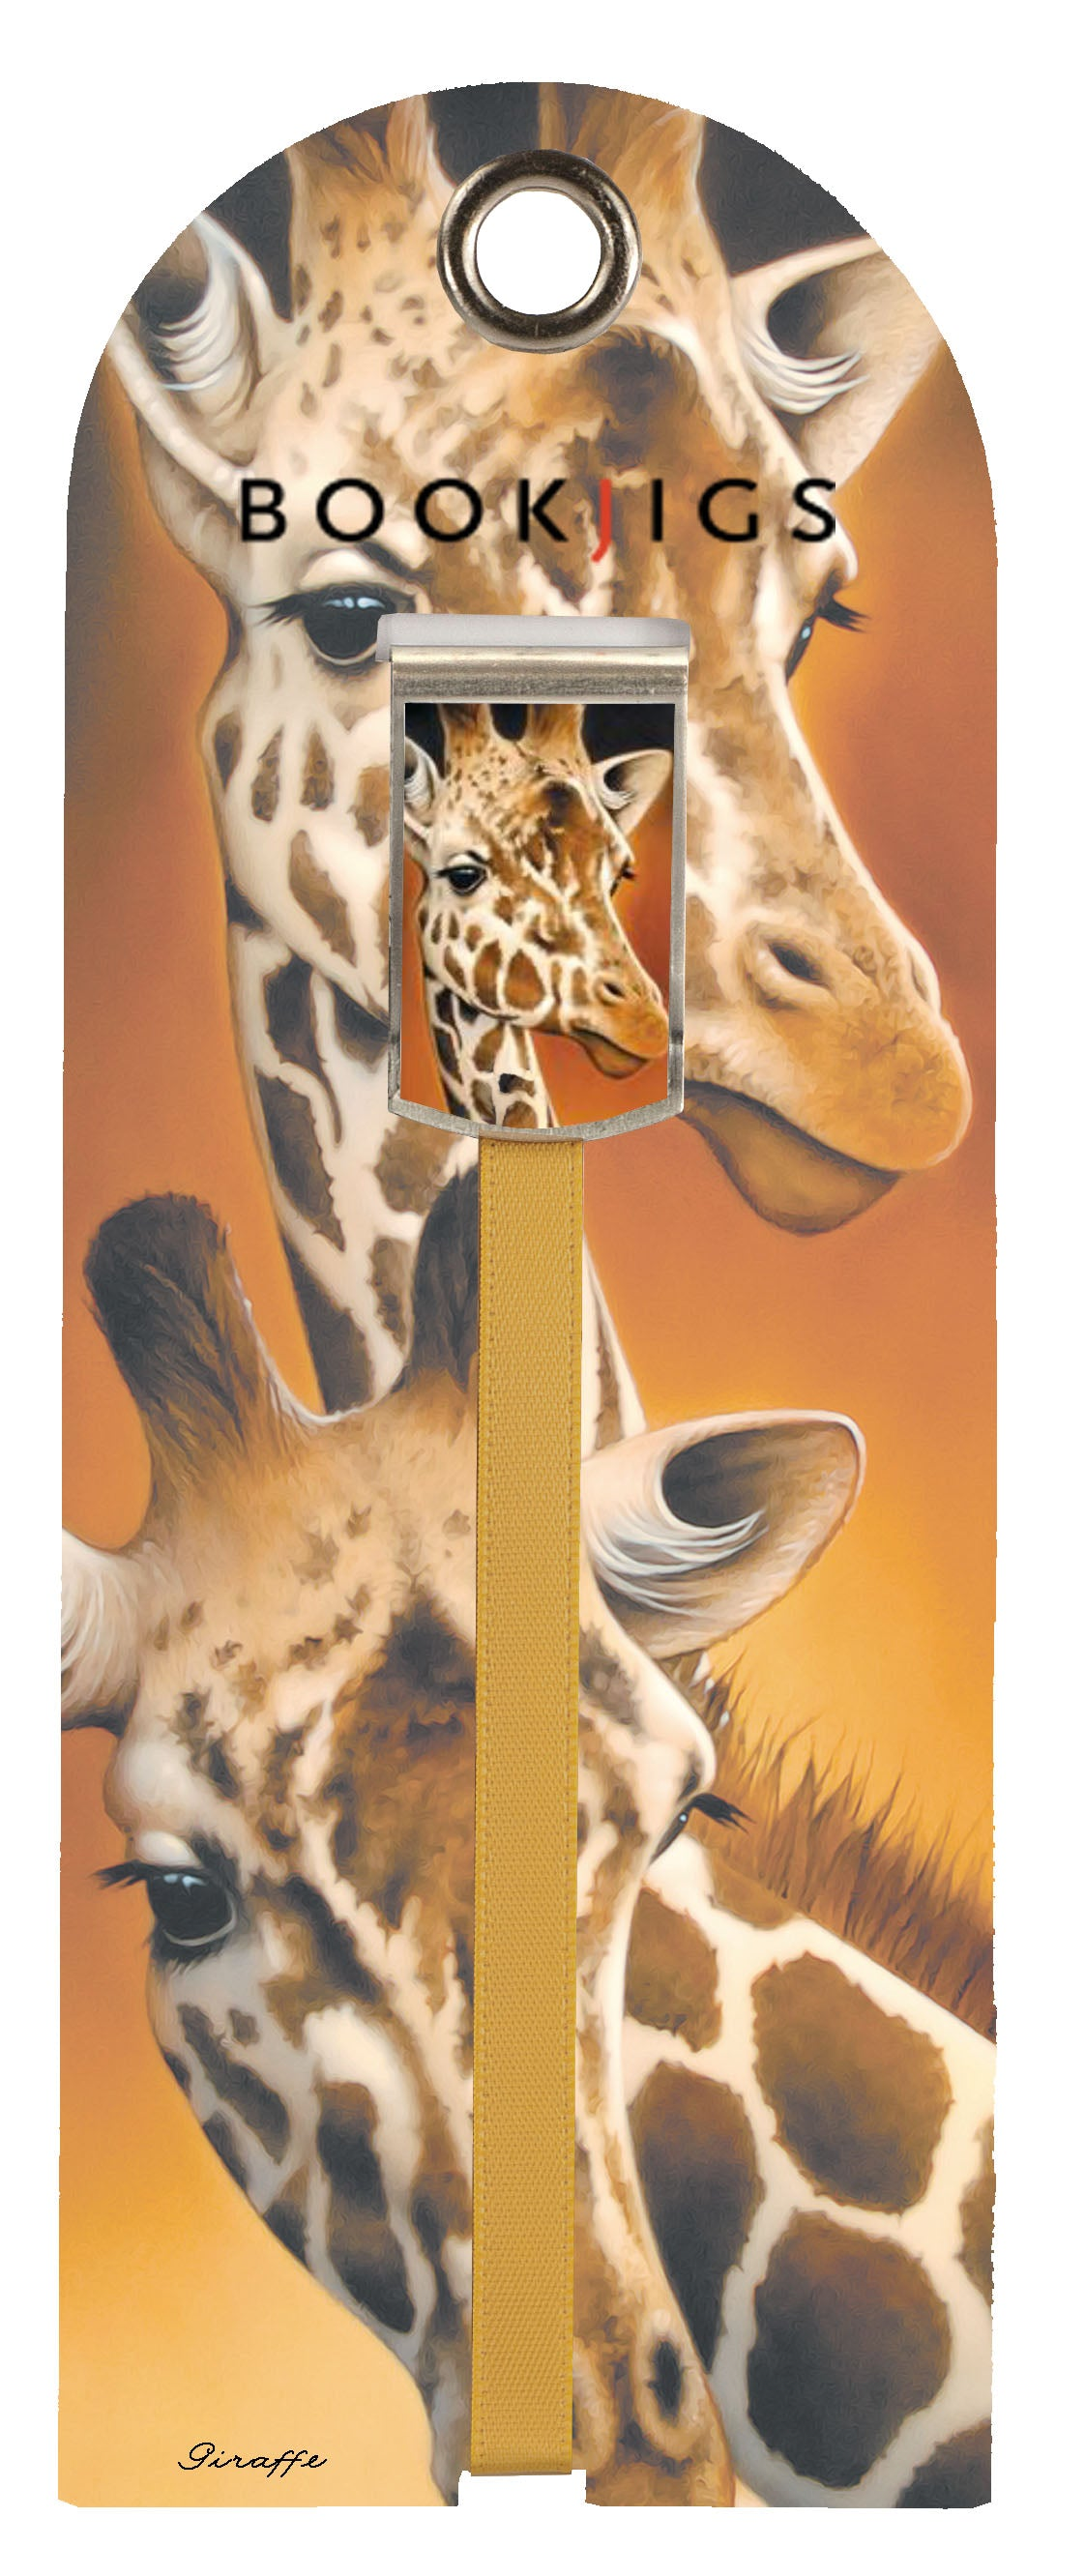 NEW! SKU : 1438 - Giraffe Bookjig